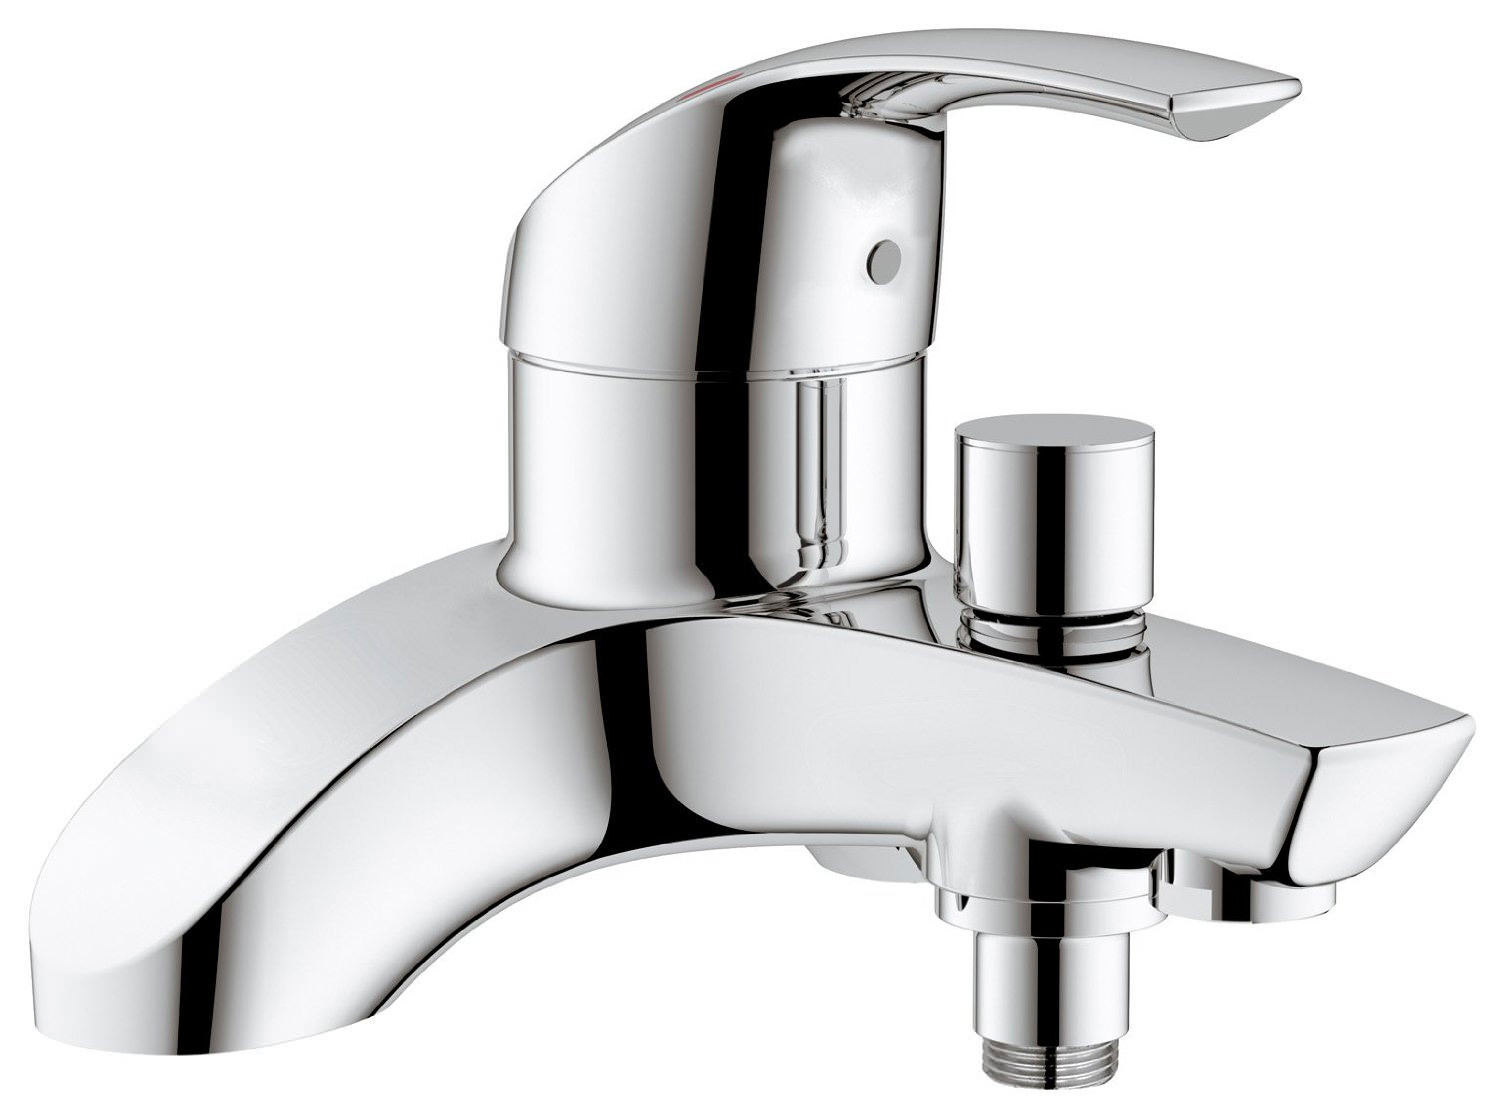 bath shower mixer grohe eurosmart deck mounted bath shower mixer tap